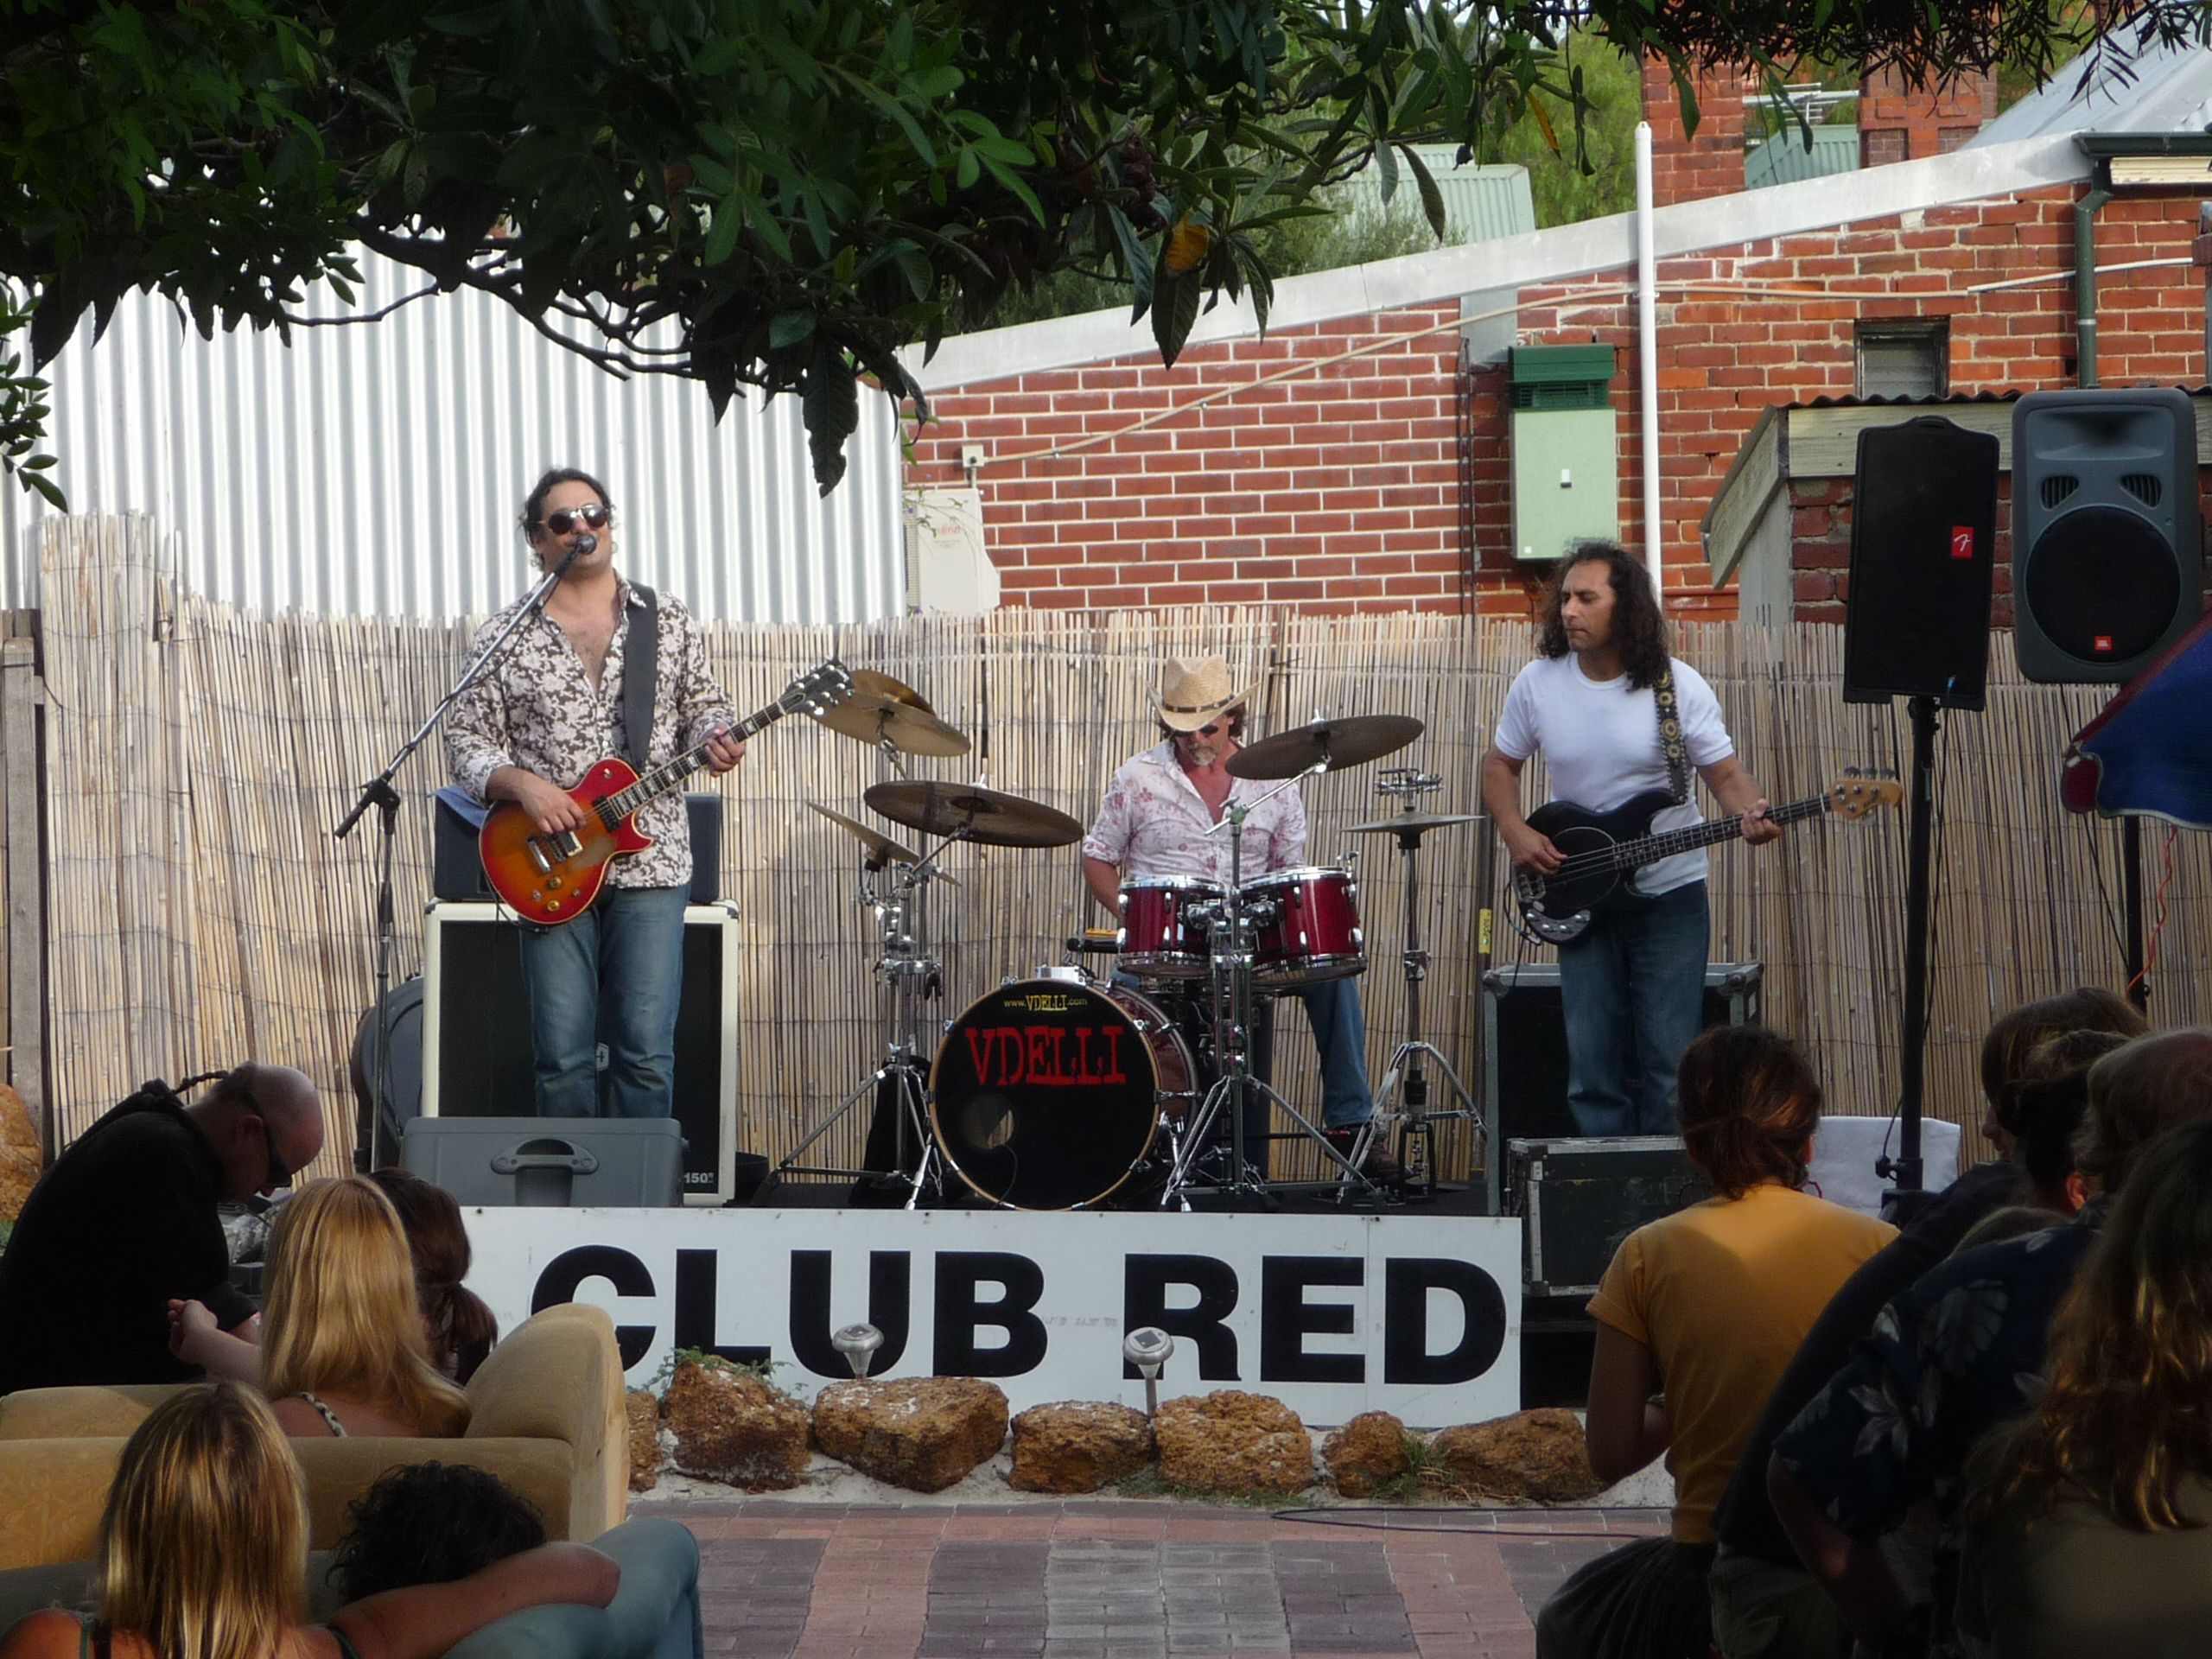 Blues/Rock band Vdelli at a Club Red event